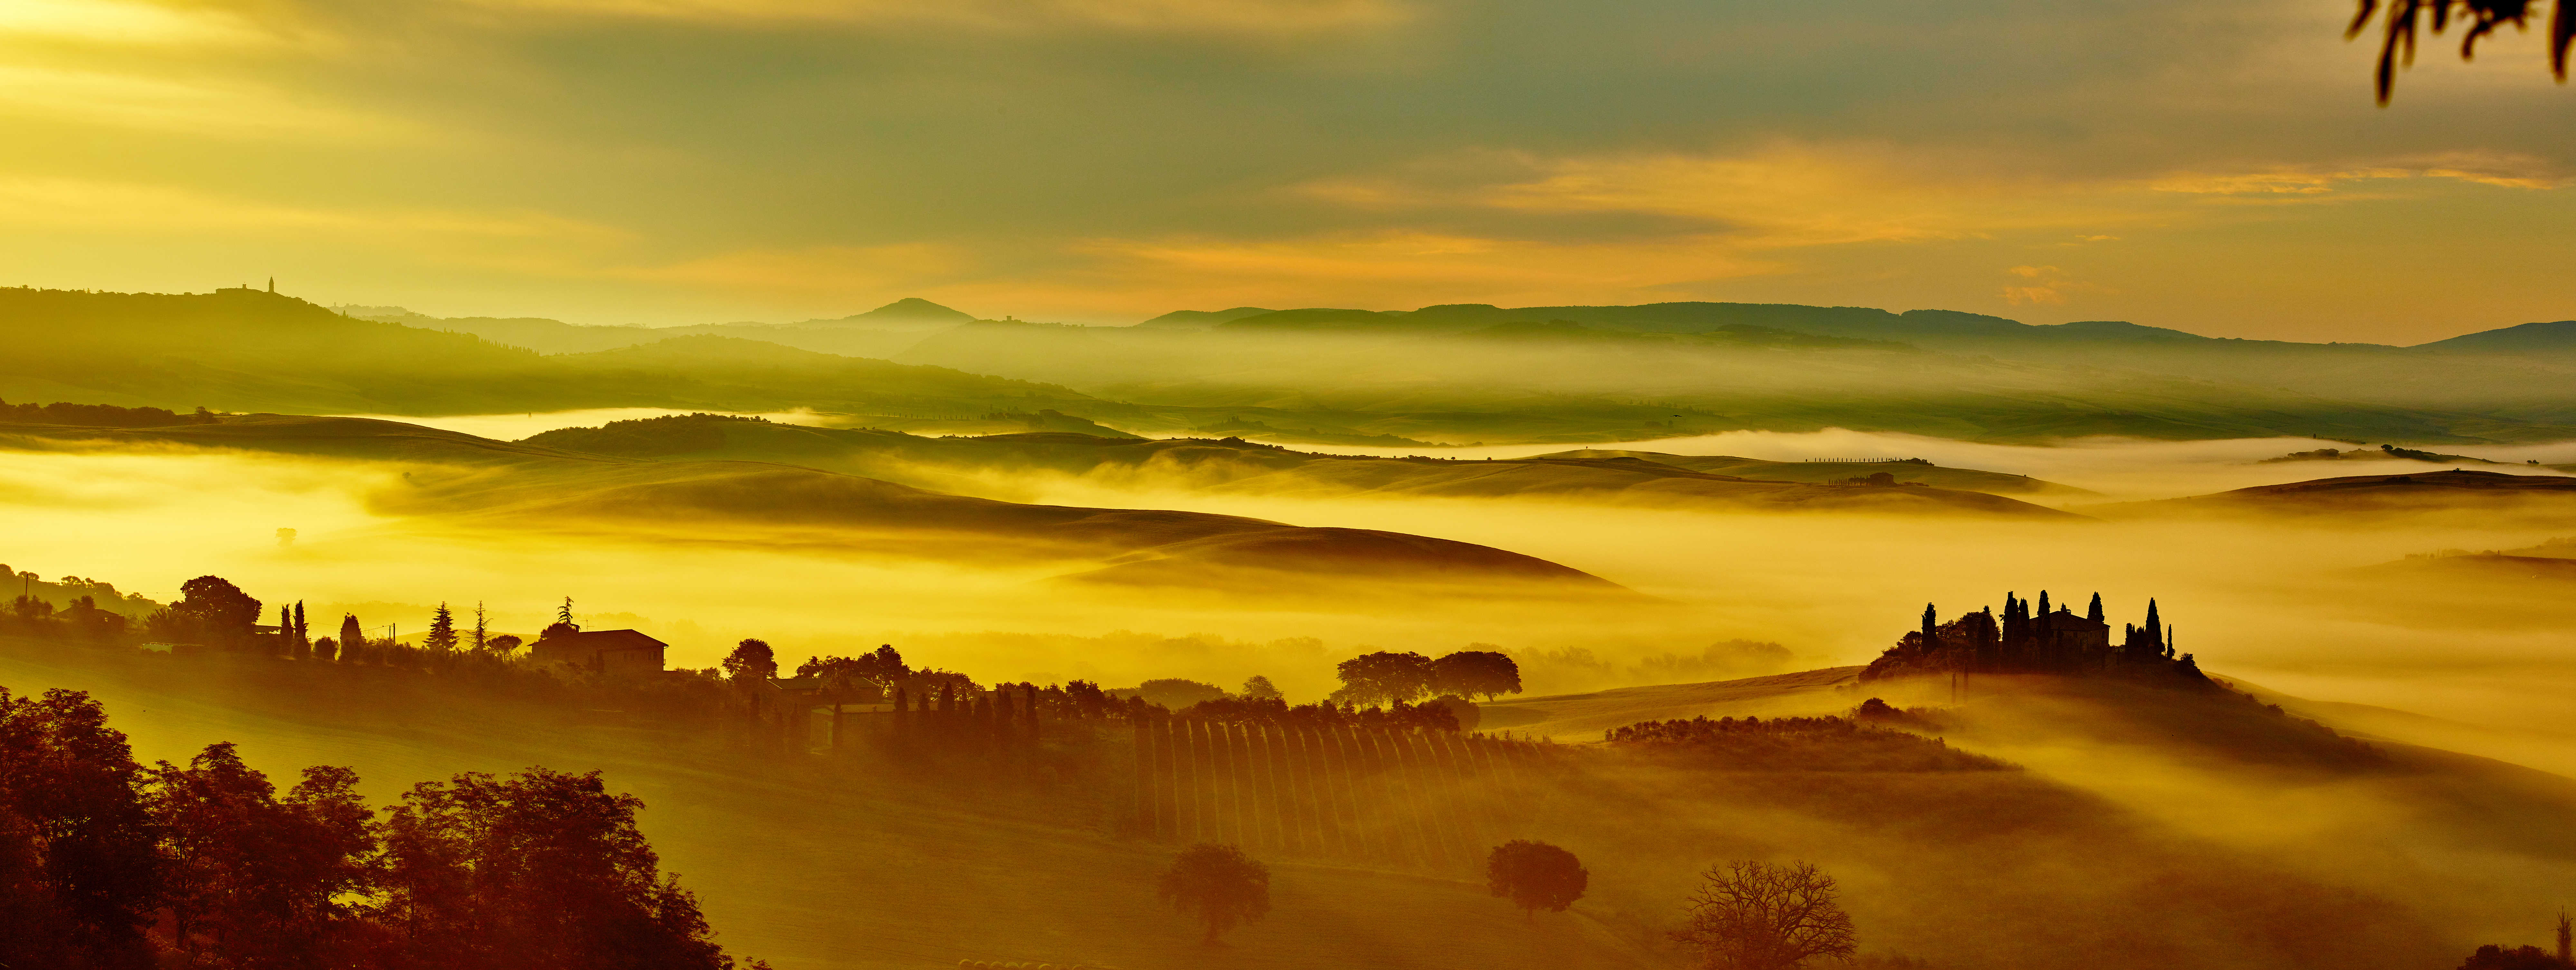 Italy-Tuscany-Gold-Rolling-Hills-Panorama.jpg